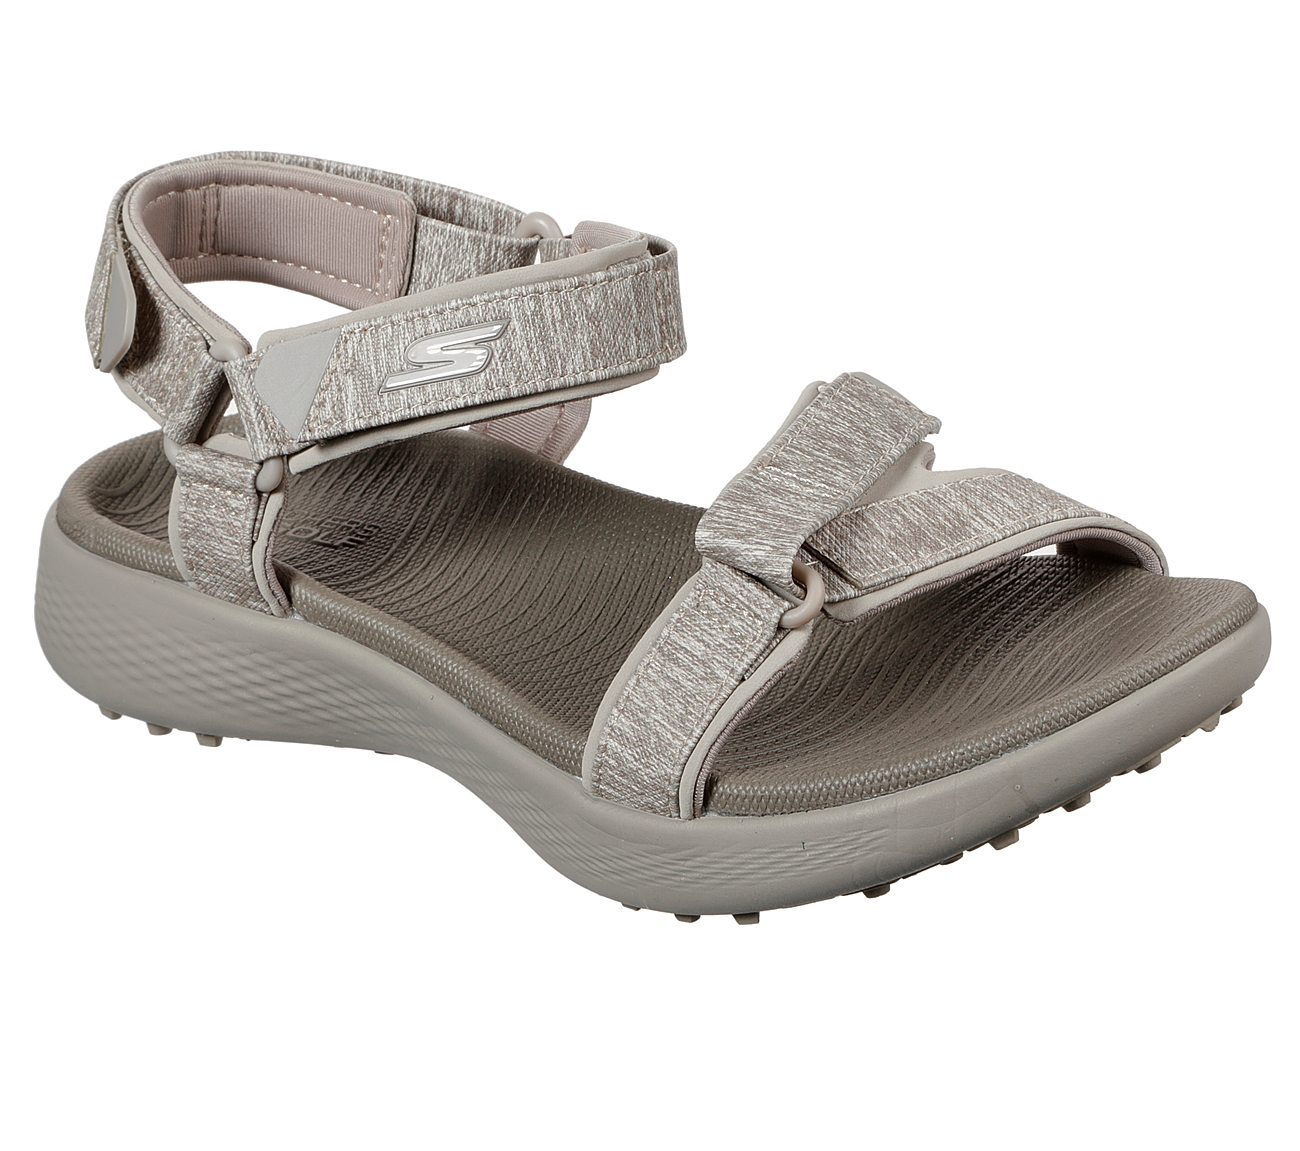 Skechers Women's Go Golf 600 Taupe Sandal